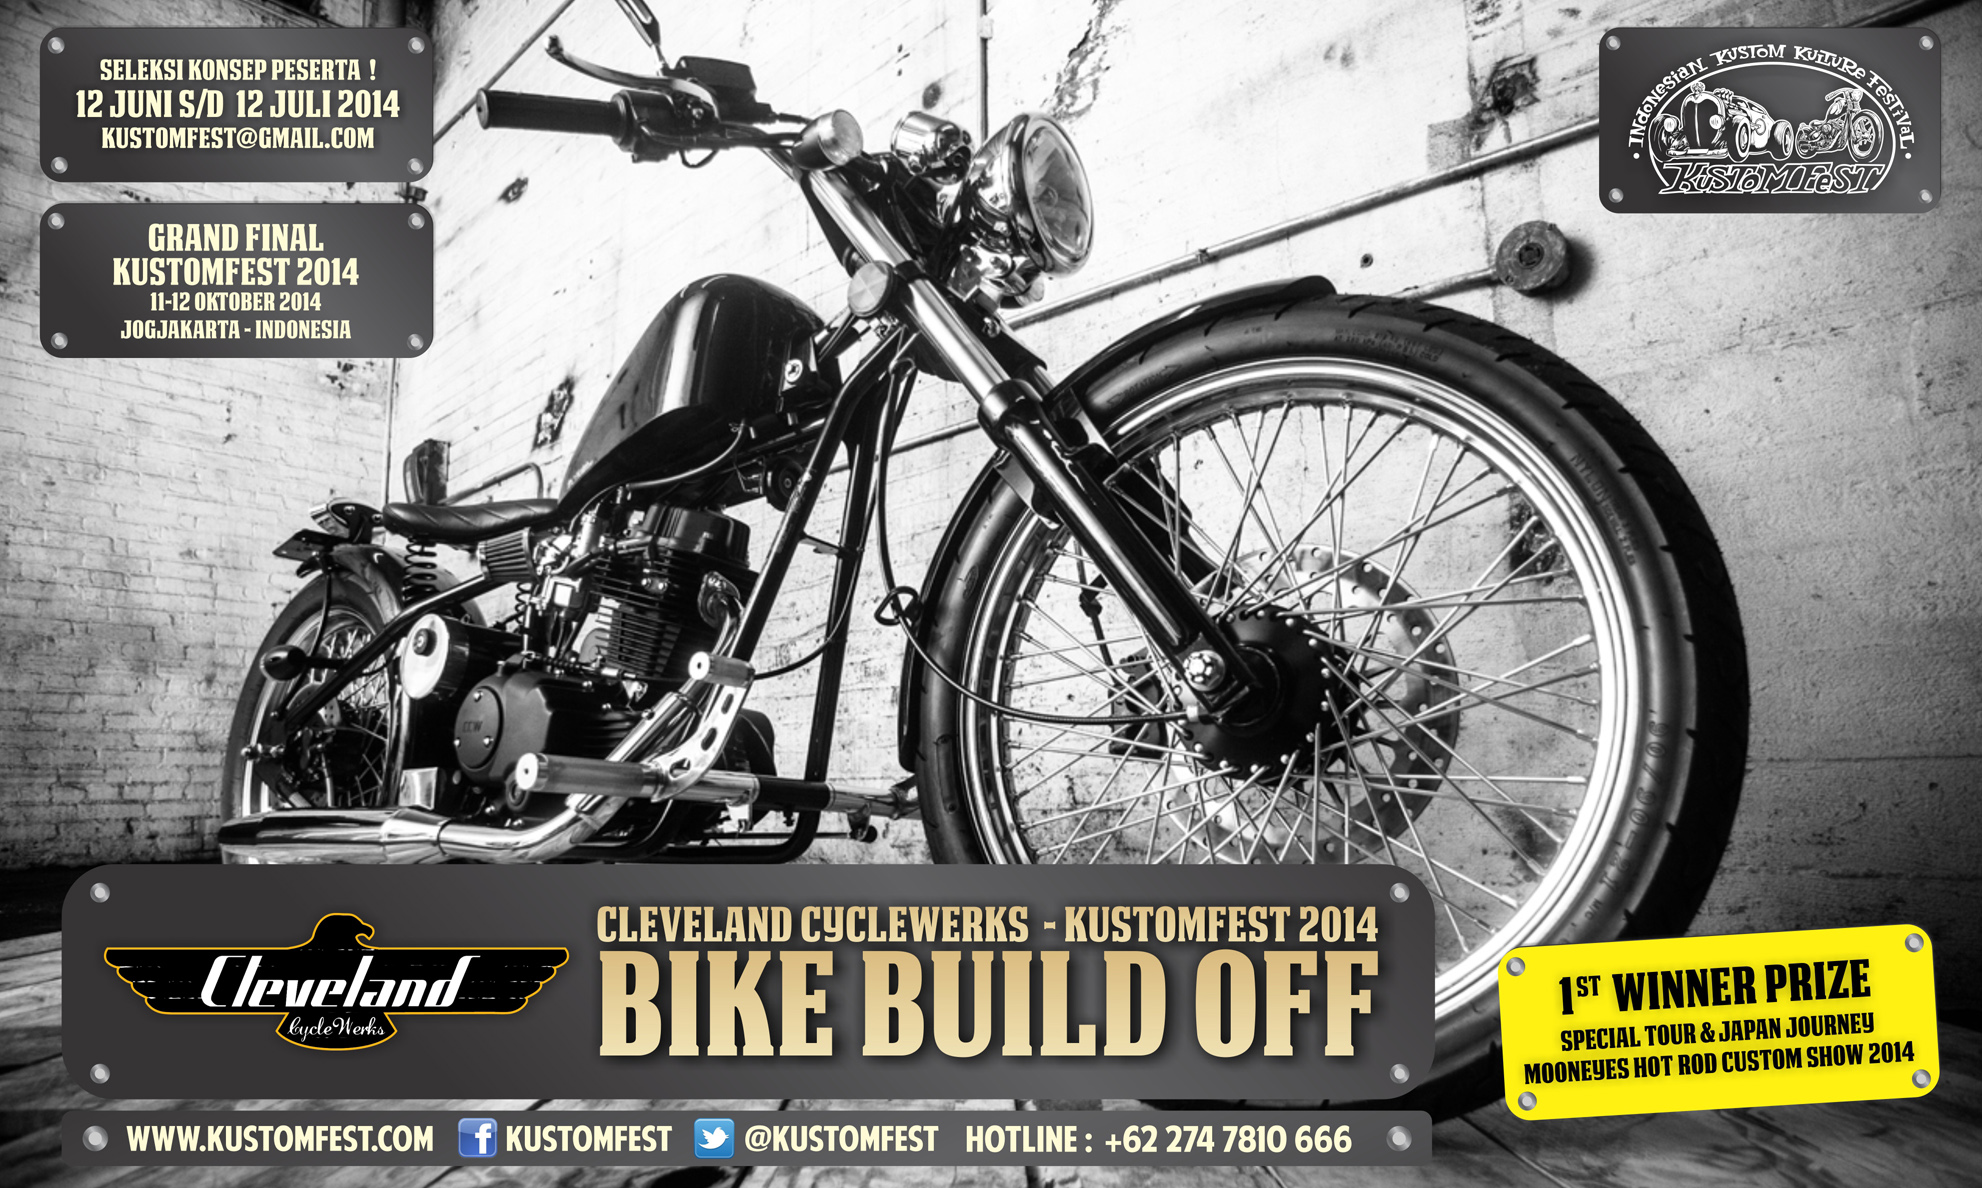 Cleveland-Bike-Build-Off-Indonesia